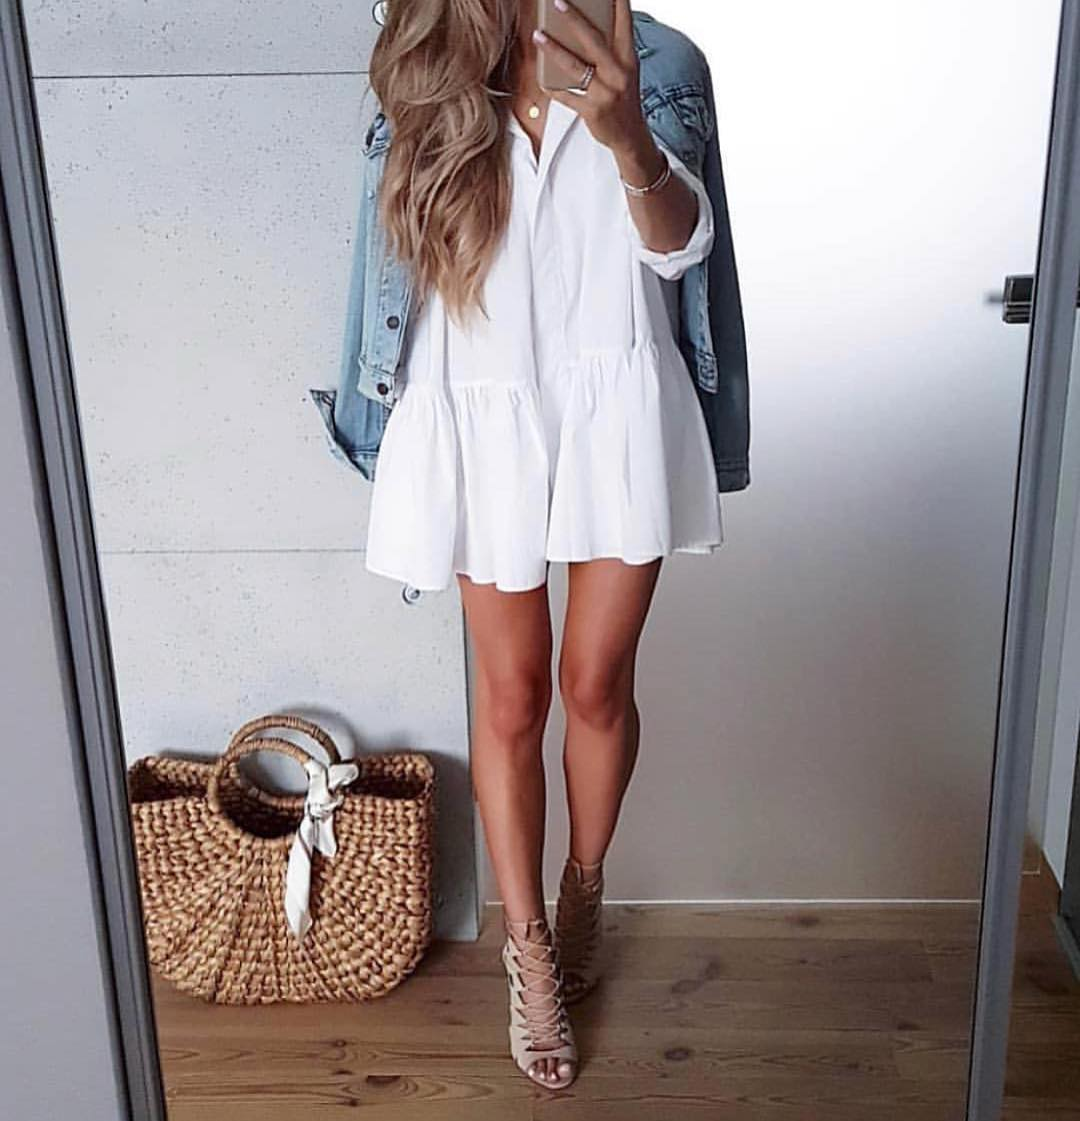 White Peasant Dress With Denim Jacket And Strappy Heeled Sandals For Summer 2020